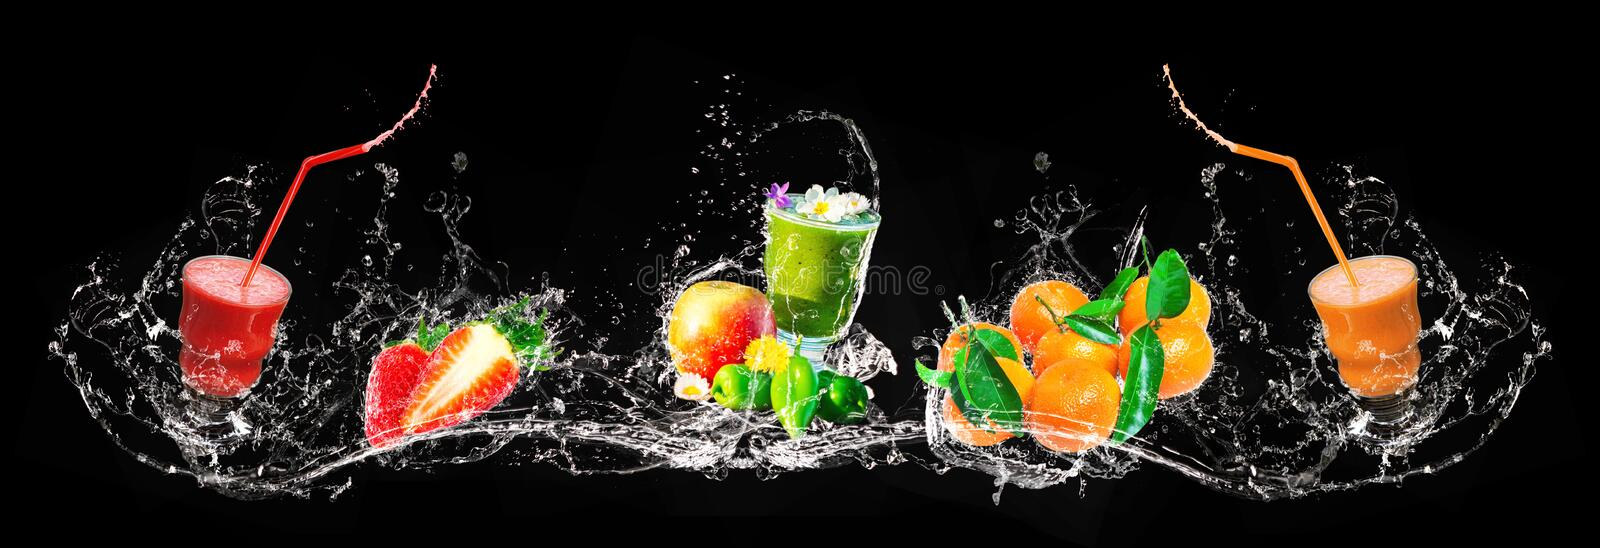 Fresh mix of smoothies and fruit, splashing, banner royalty free stock image